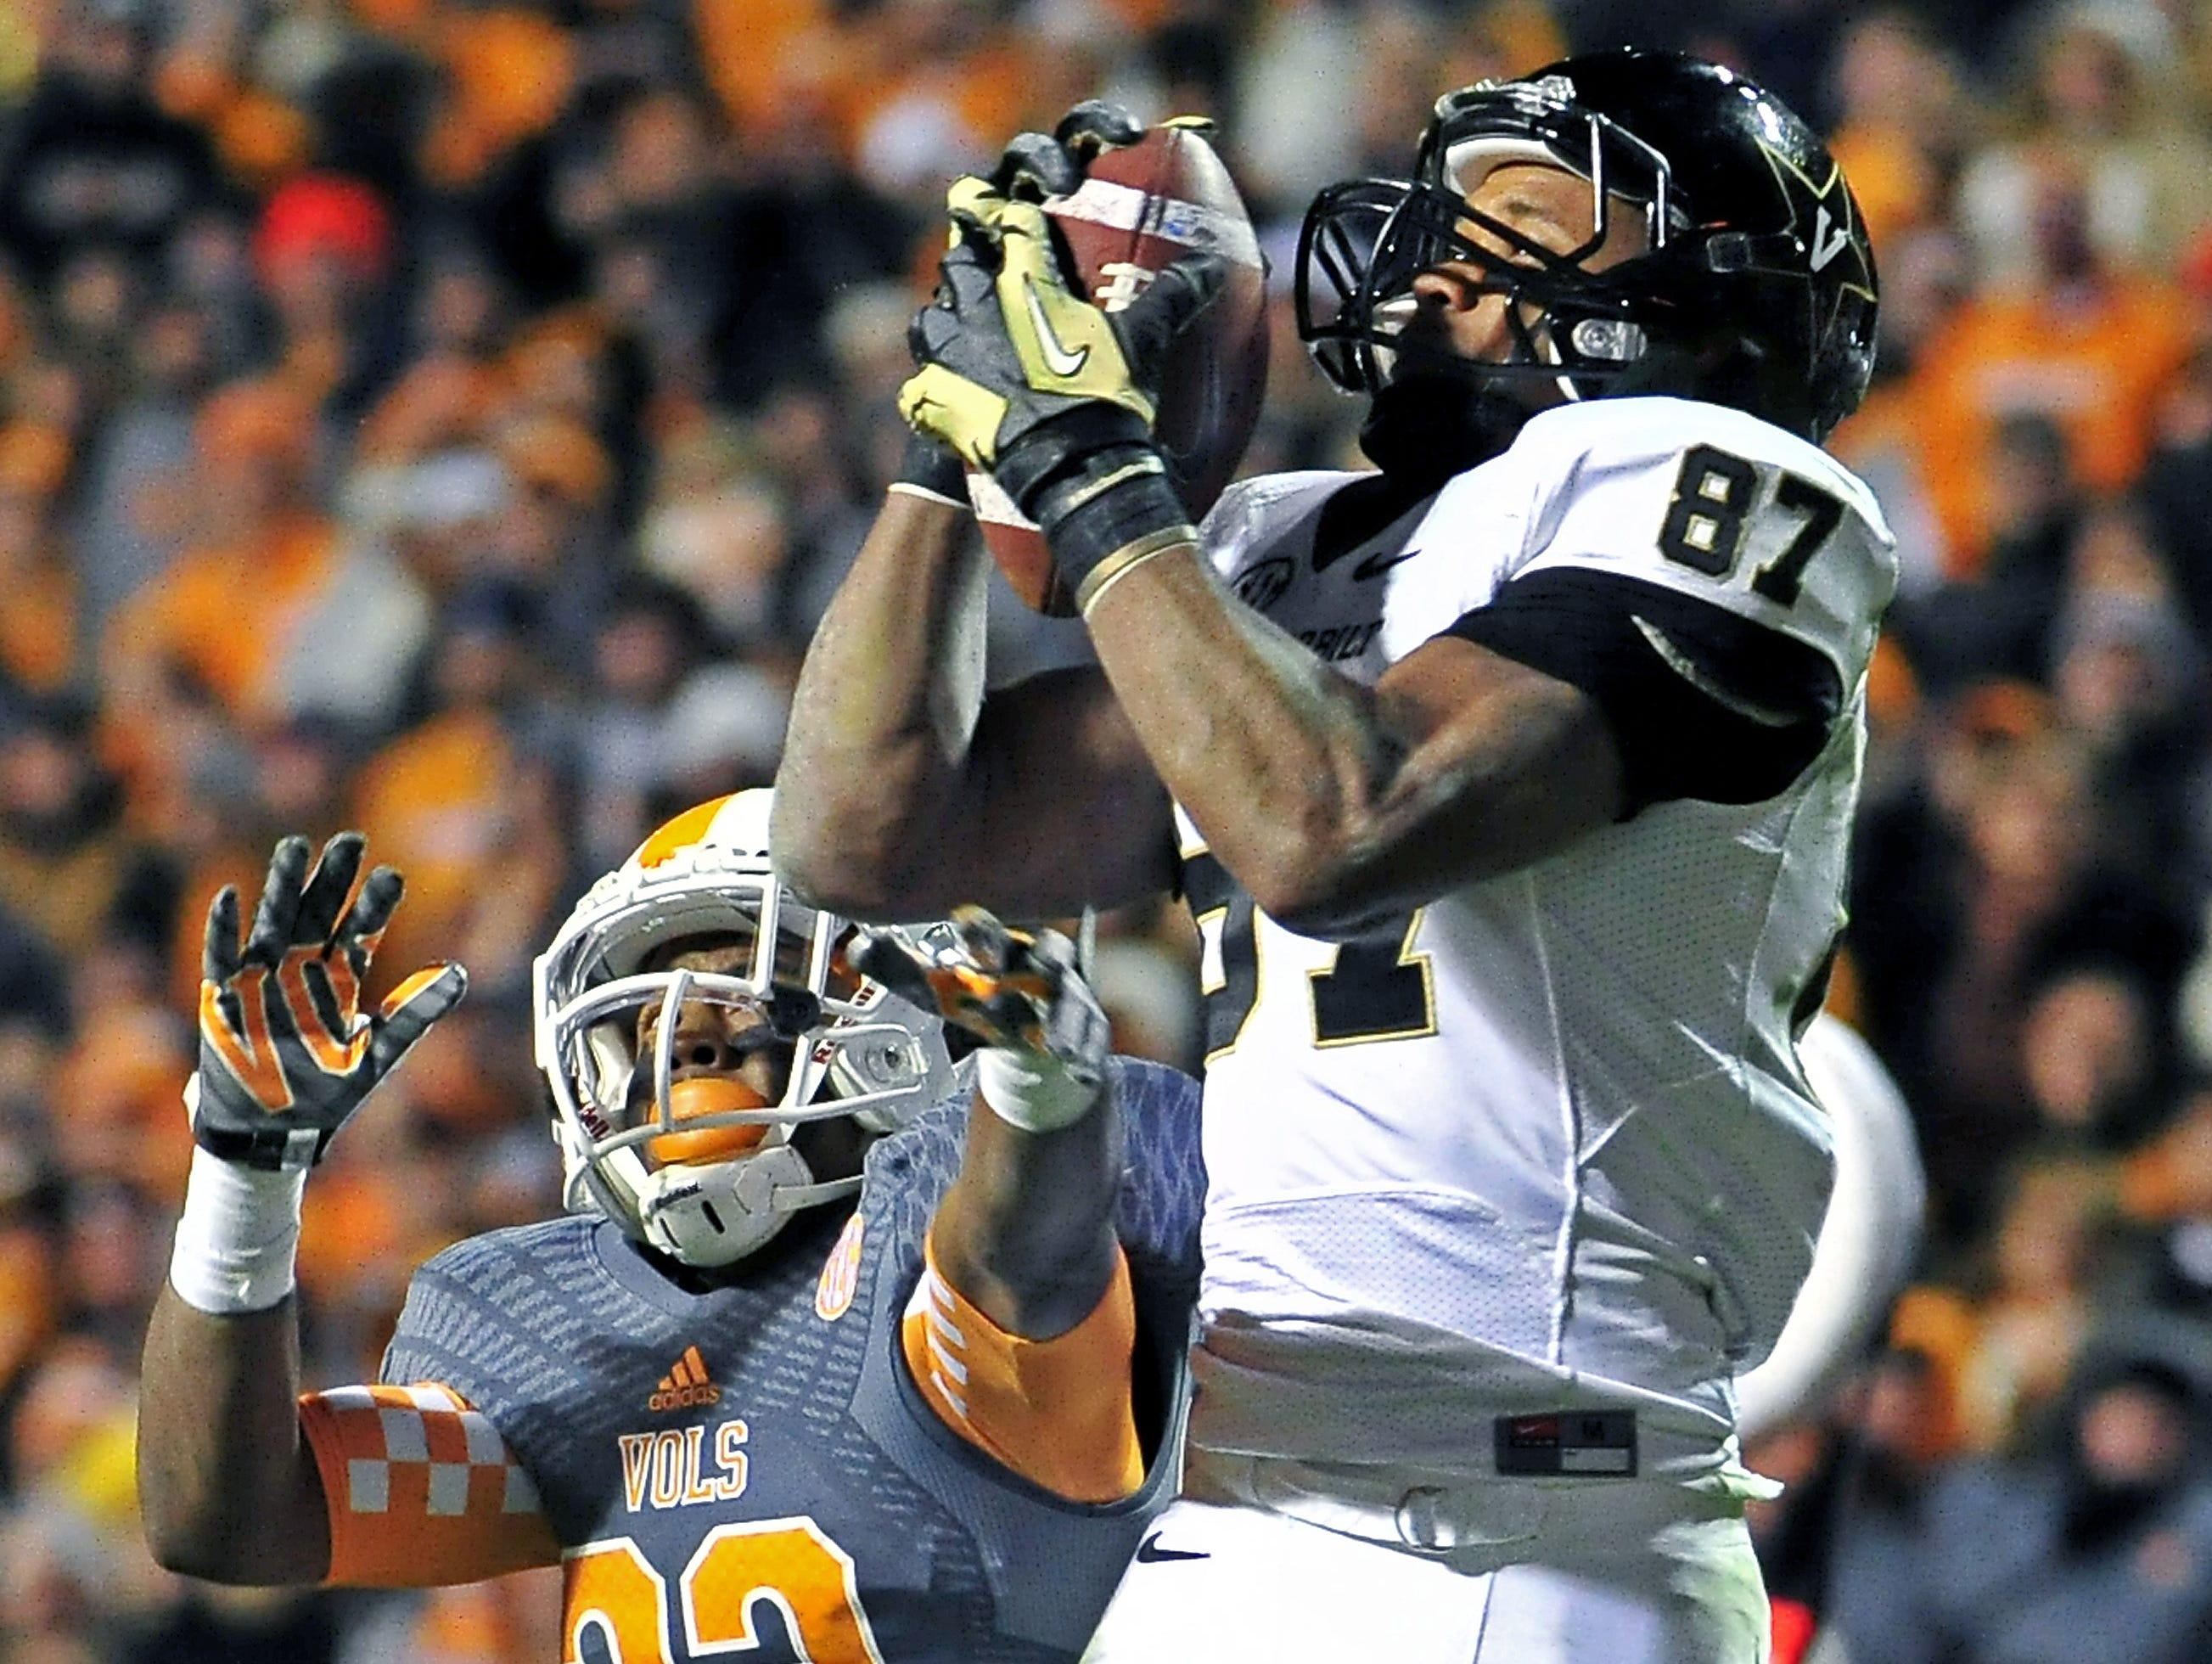 Vanderbilt wide receiver Jordan Matthews (87) catches a 25-yard pass over Tennessee defensive back Cameron Sutton in the fourth quarter to set up the winning touchdown. Vanderbilt won 14-10 at Neyland Stadium Nov. 23, 2013.